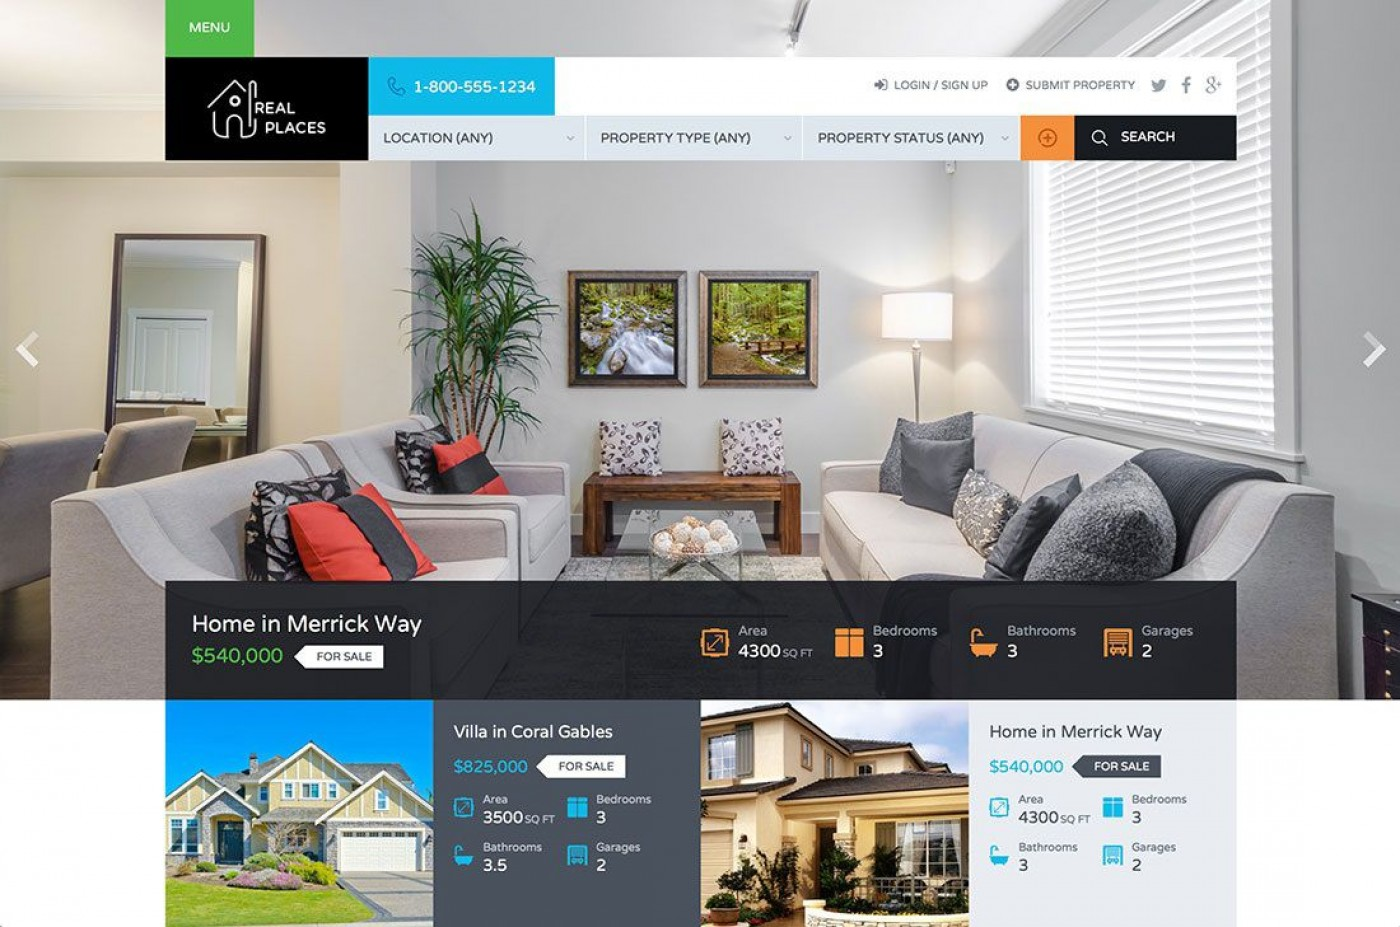 006 Best Real Estate Template Wordpres Inspiration  Homepres - Theme Free Download Realtyspace1400